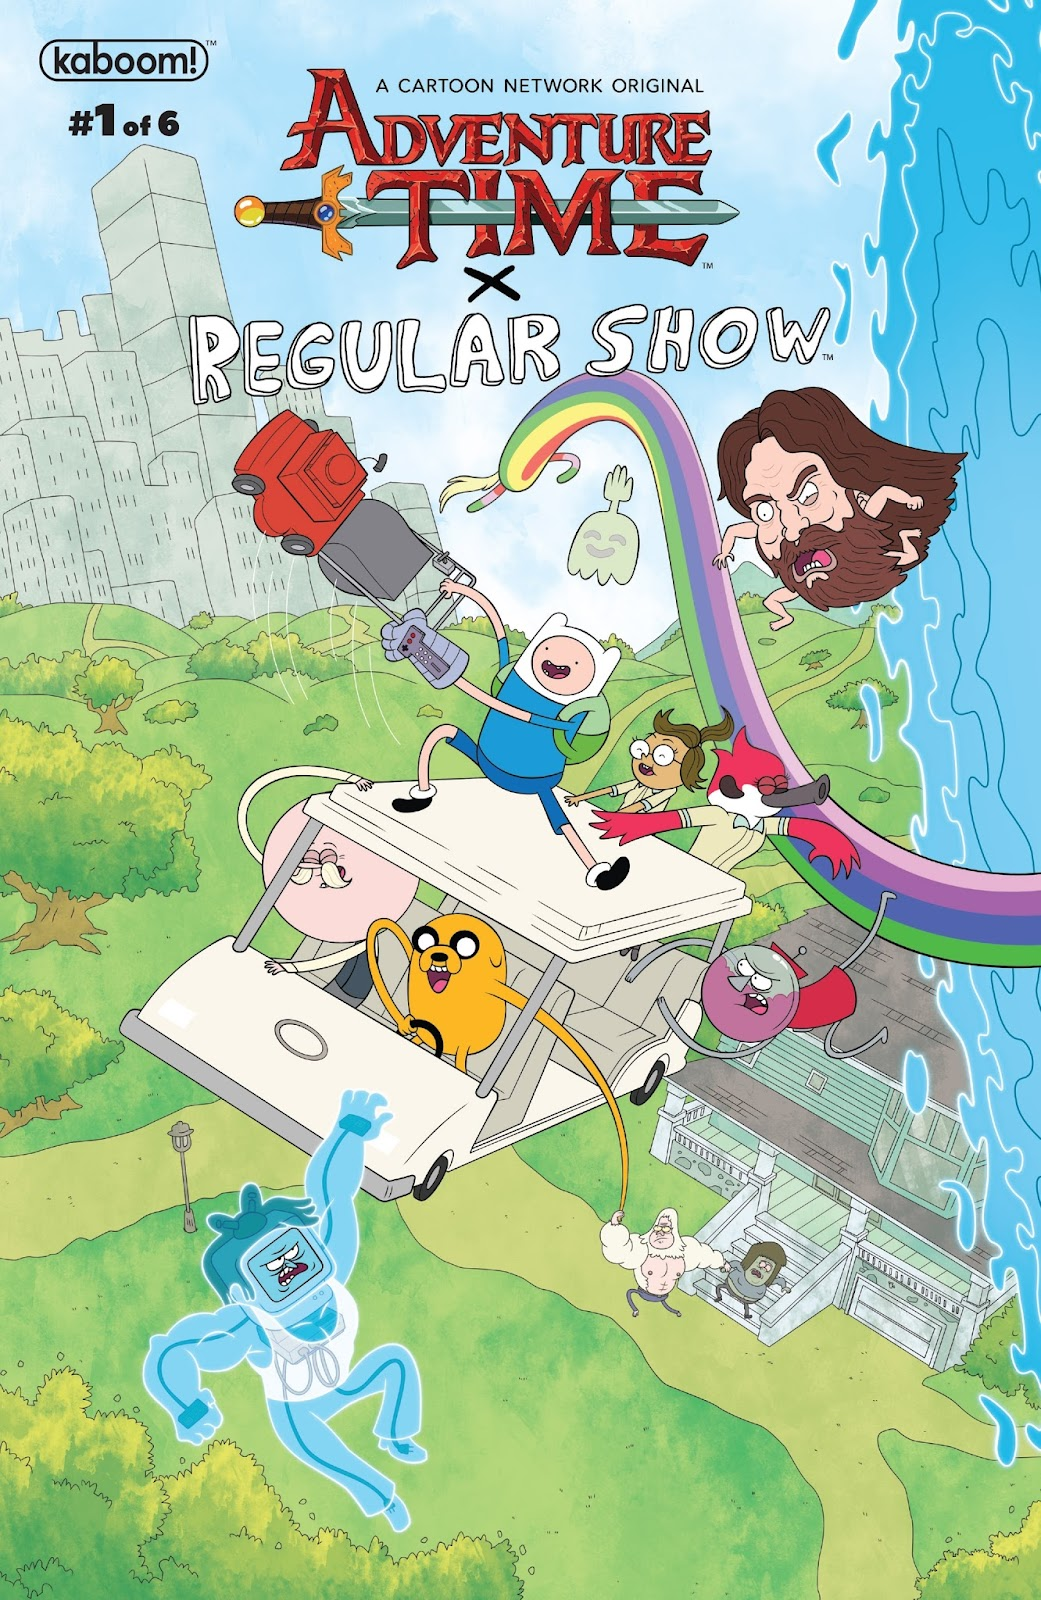 Read Online Adventure Time Regular Show Comic Issue 1